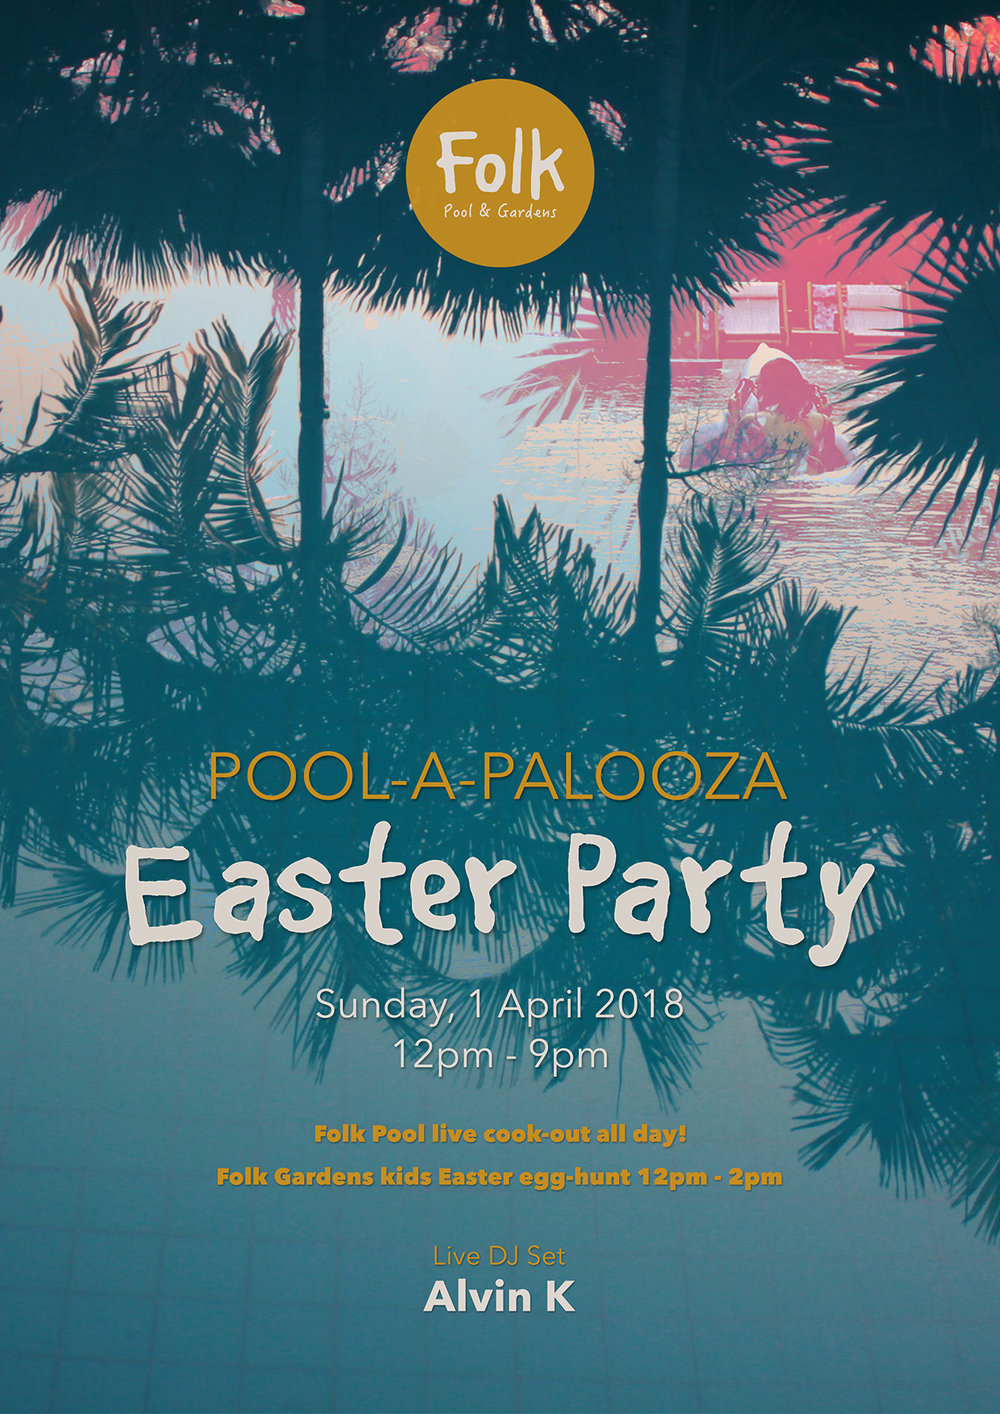 EASTER-POOLAPALOOZA-FLYER-1.jpg